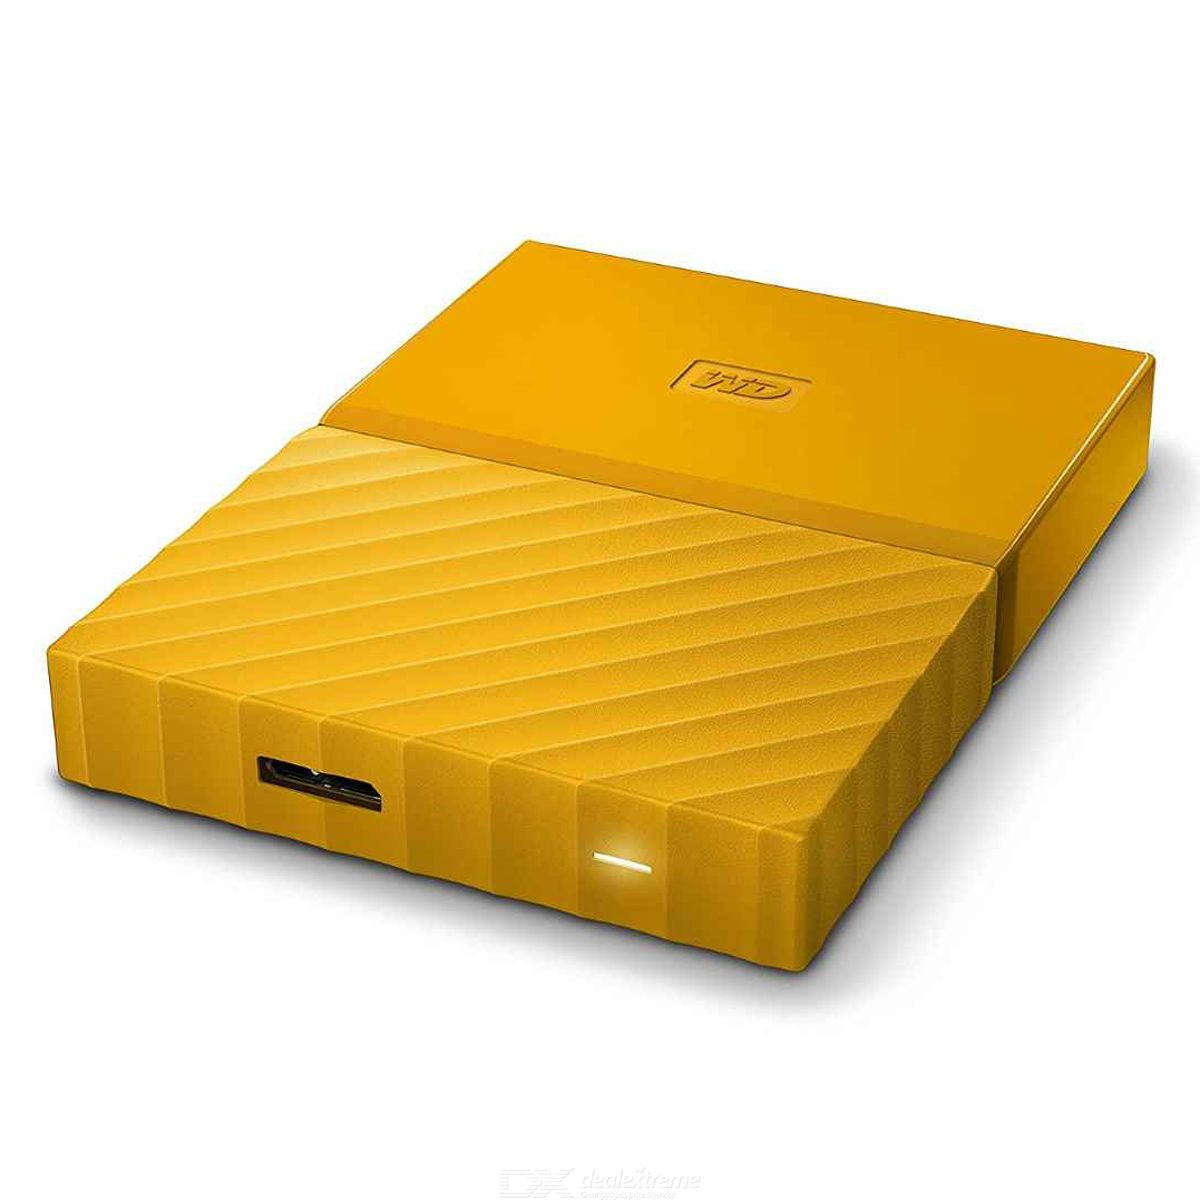 WD My Passport 1TB 2.5quot External Drive USB3.0 WDBYNN0010BYL - Yellow